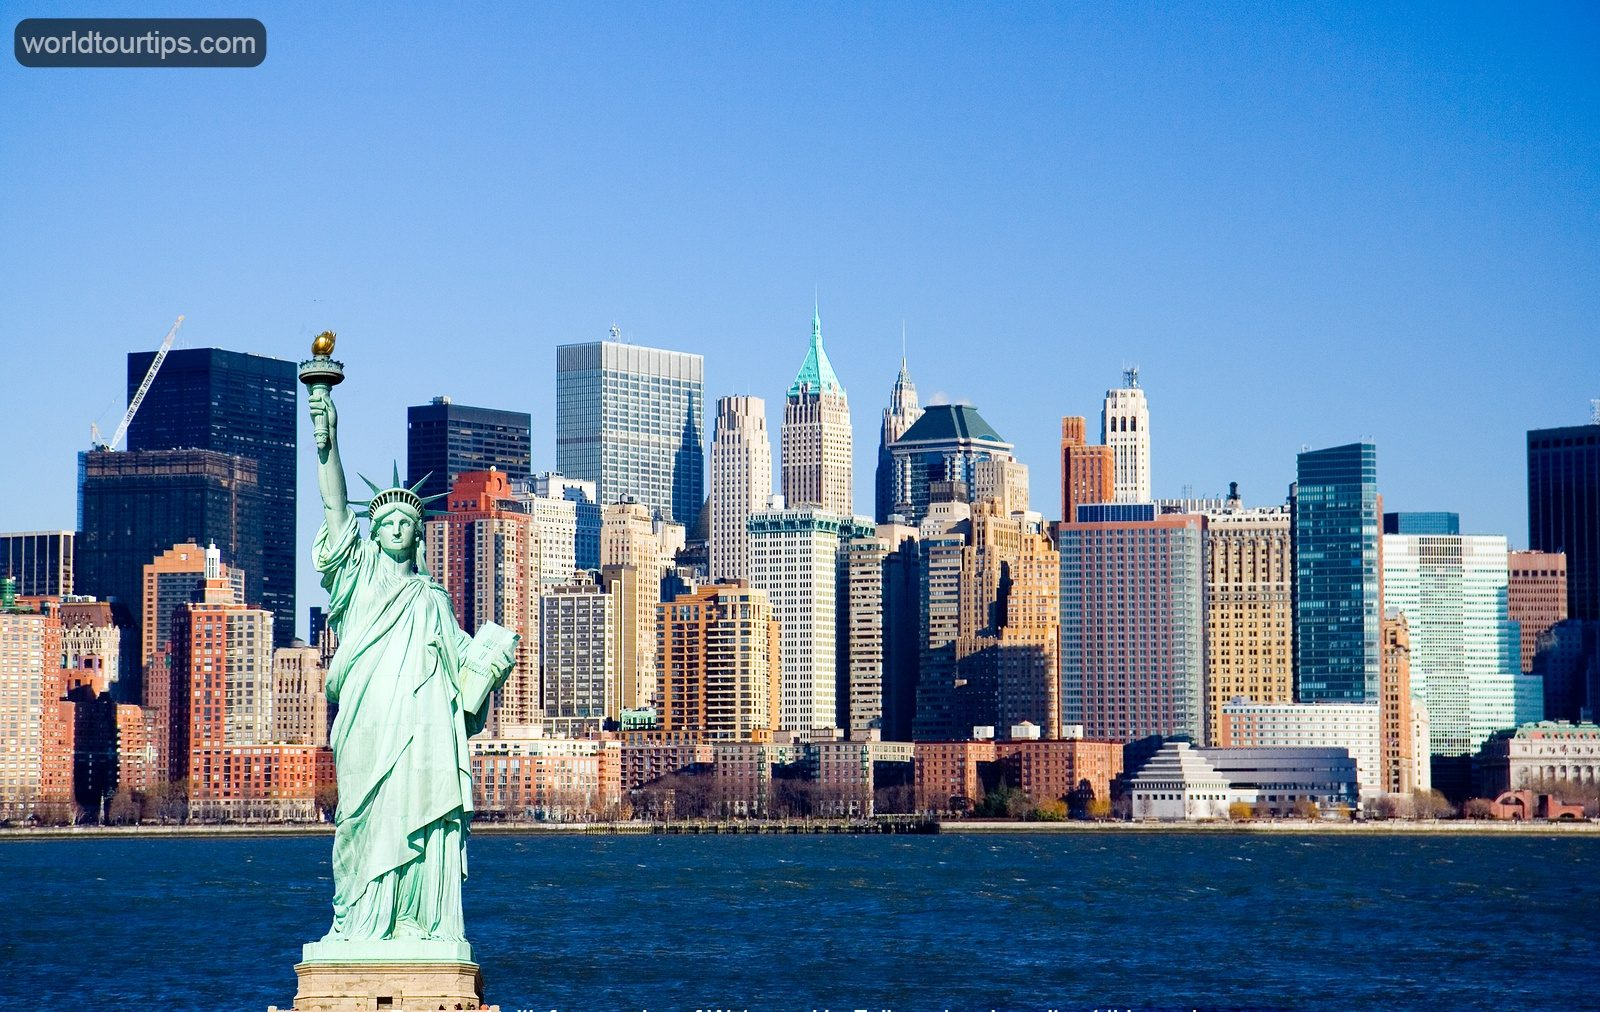 https://worldtourtips.com/top-9-places-to-visit-united-states-of-america/